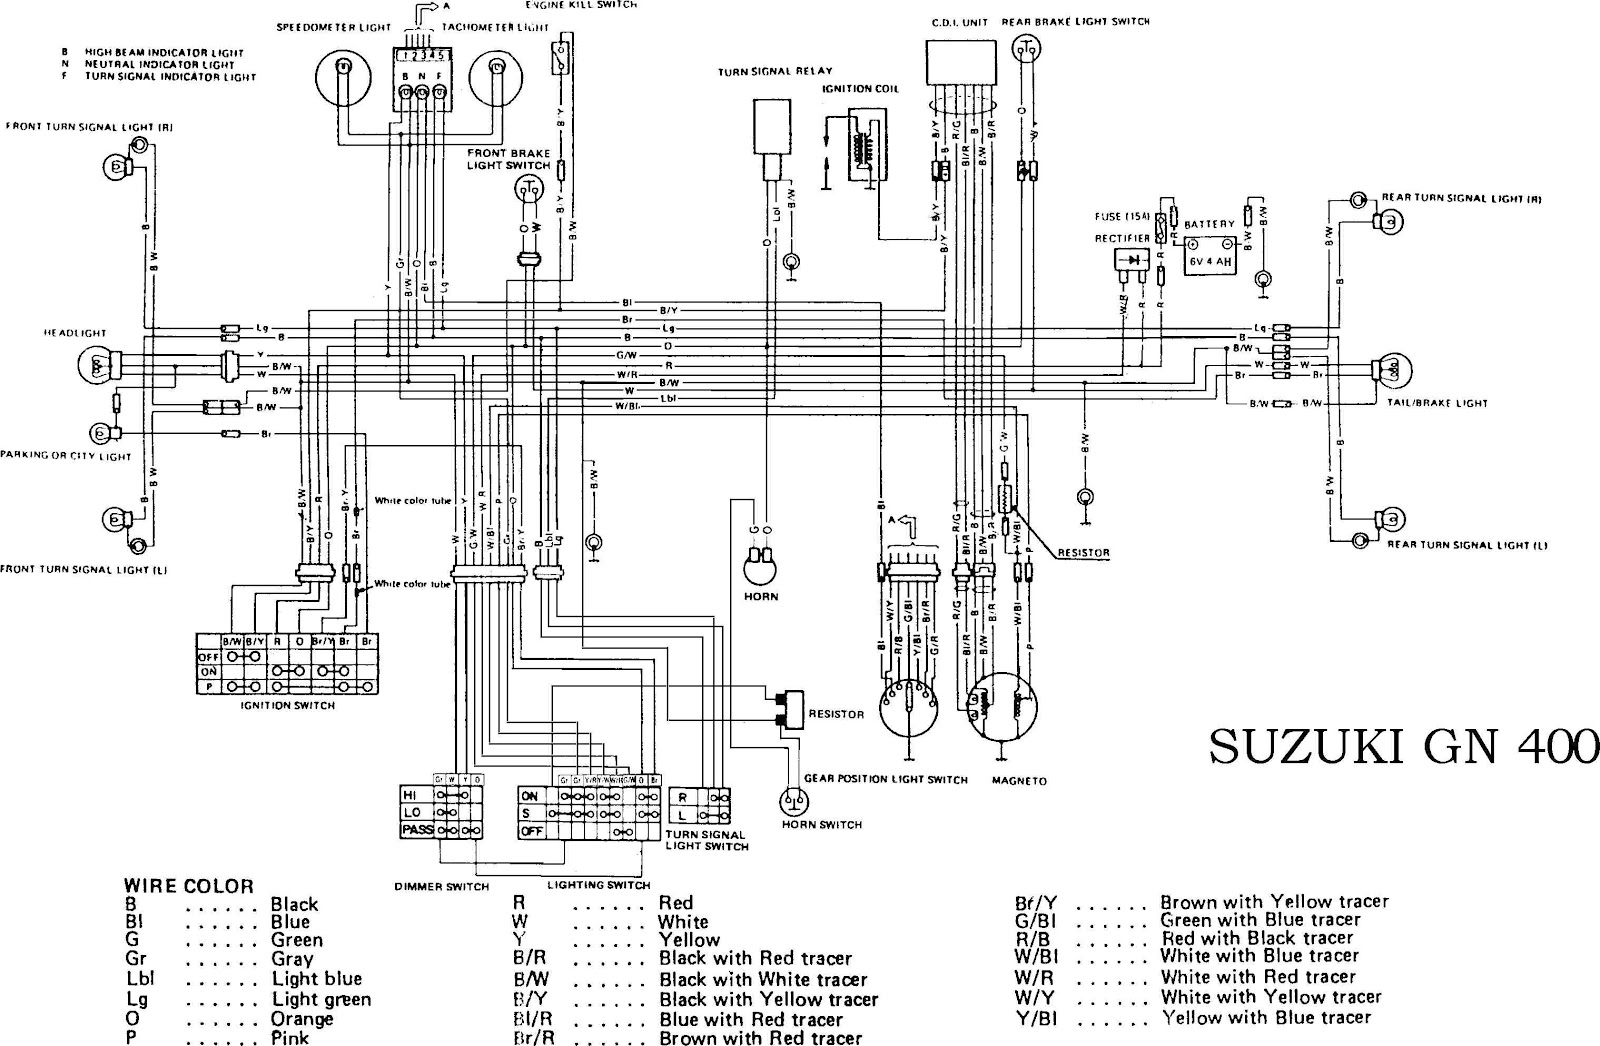 Suzuki+GN400+motorcycle+Complete+Electrical+Wiring+Diagram?resize\=665%2C435 suzuki gn 125 wiring diagram suzuki 125 three wheeler \u2022 wiring 2003 suzuki katana 600 wiring diagram at virtualis.co